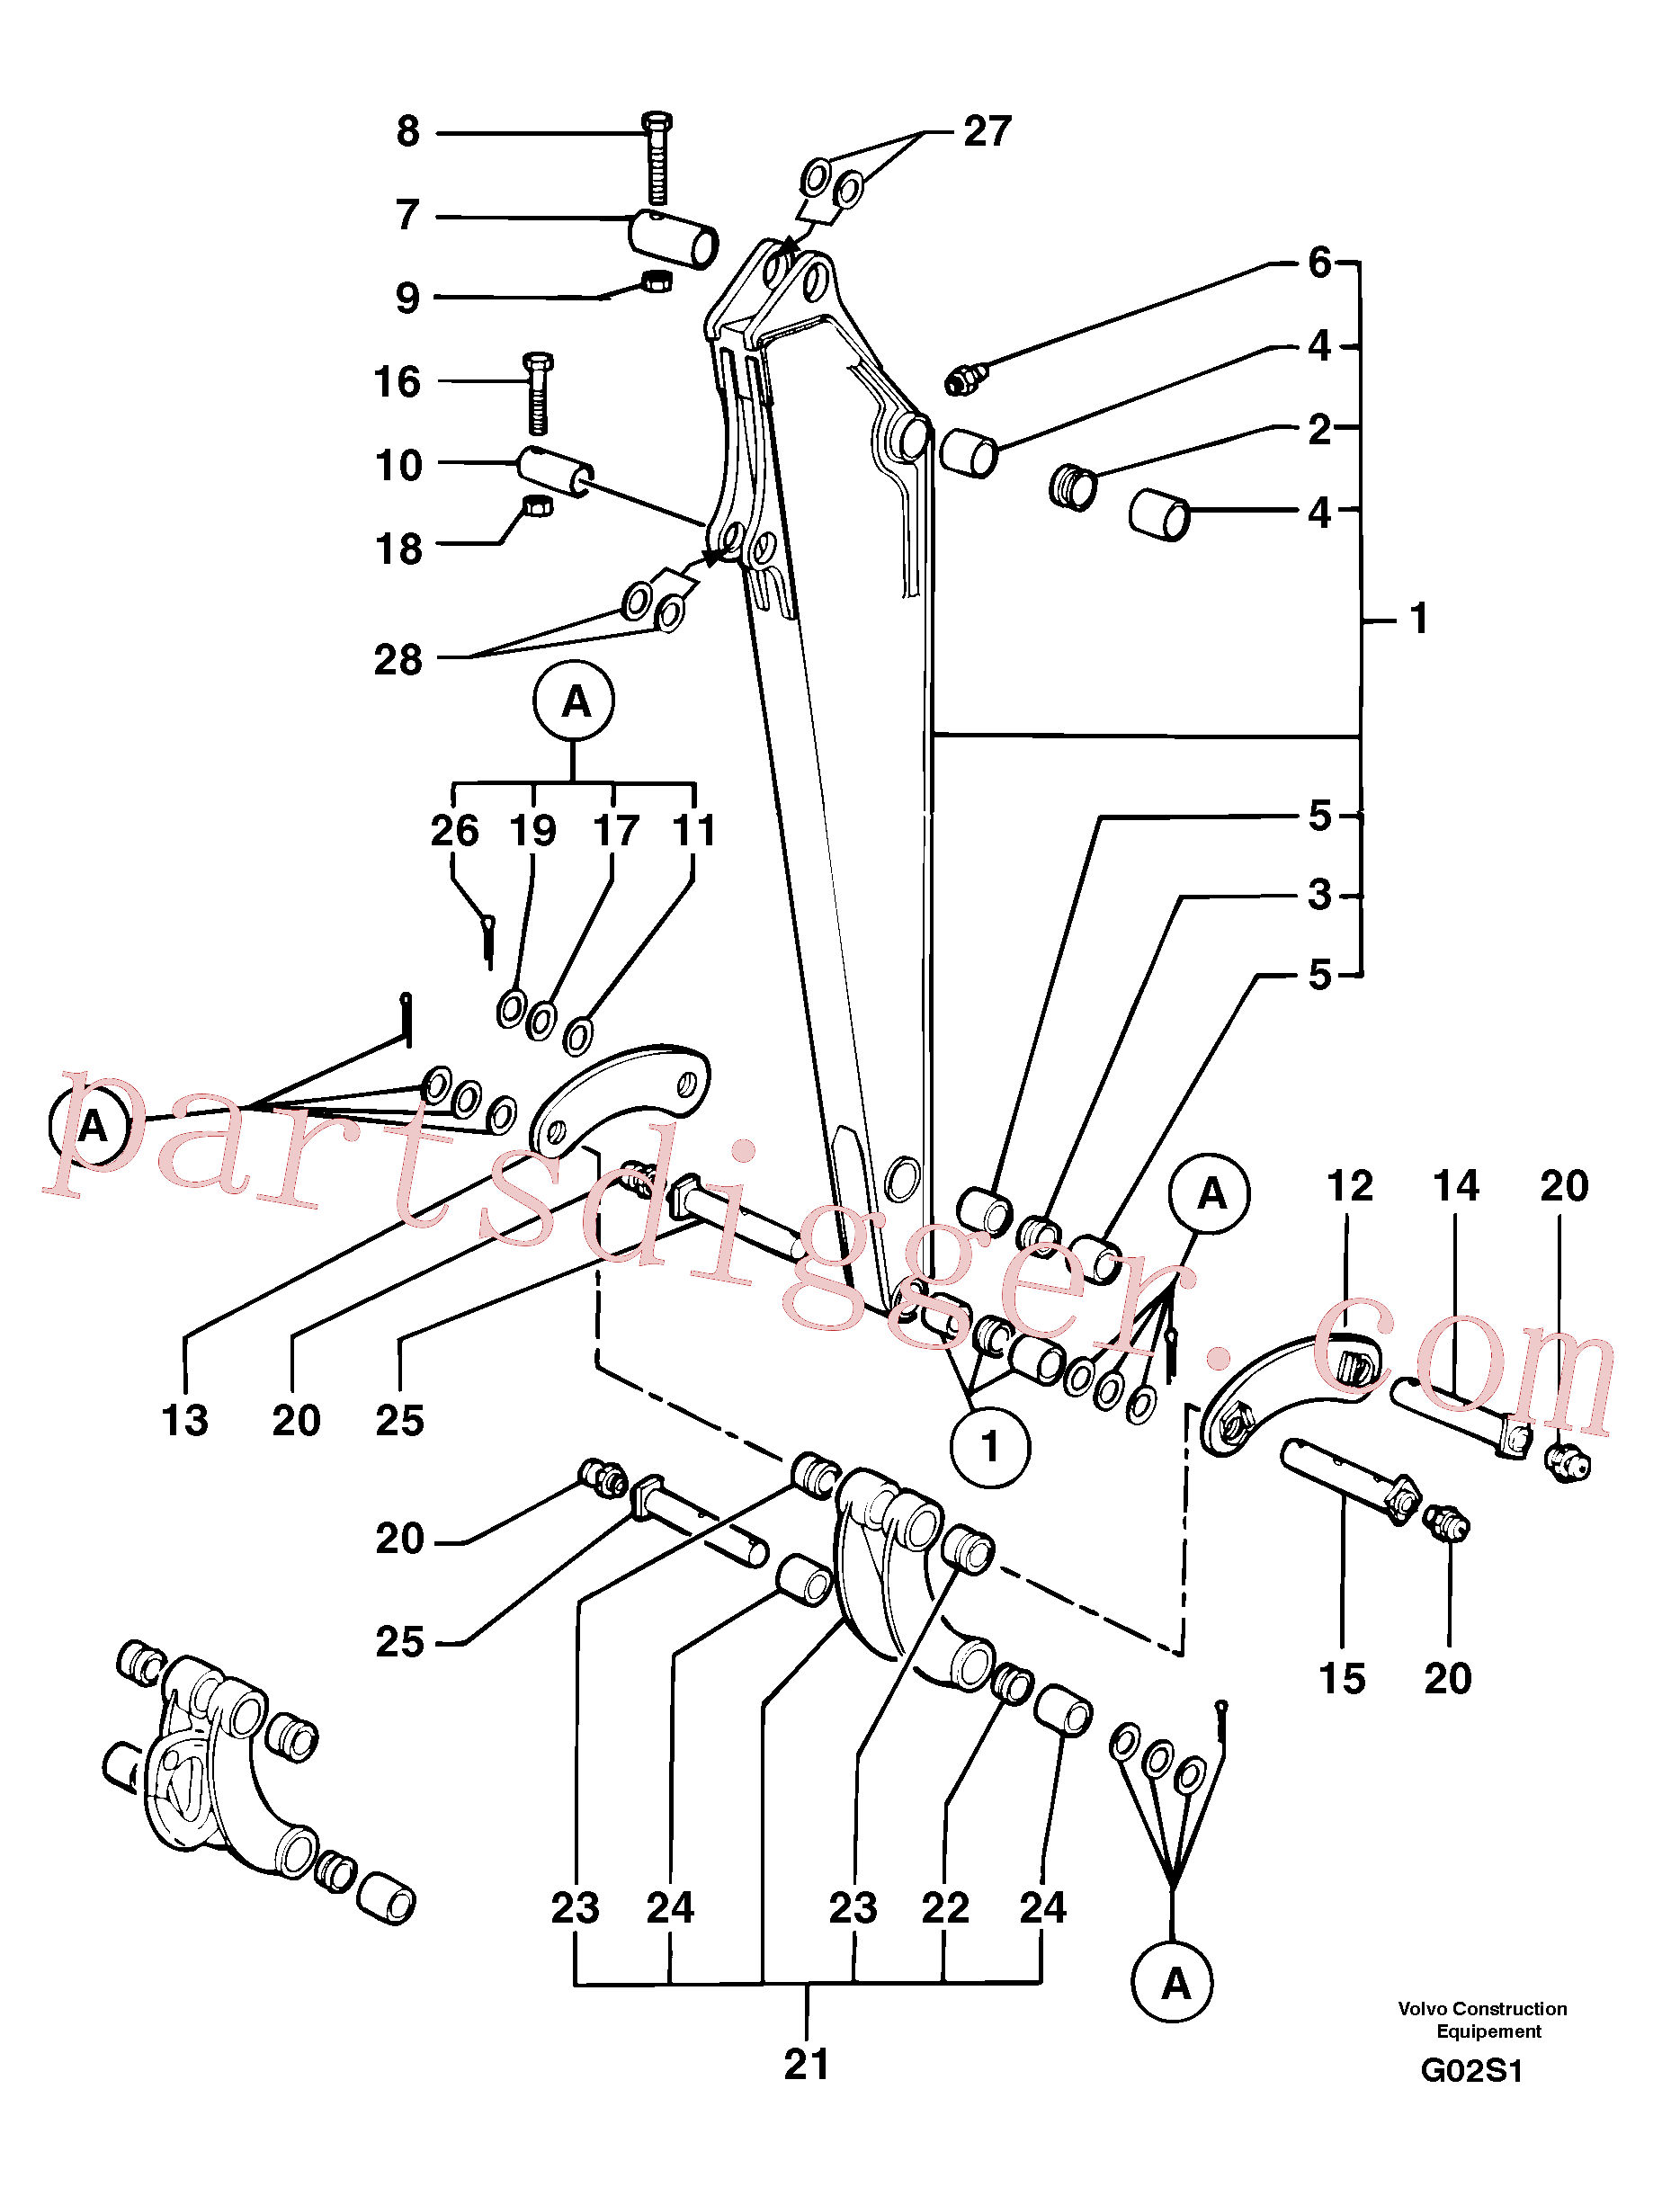 VOE11805773 for Volvo Dipper arm(G02S1 assembly)